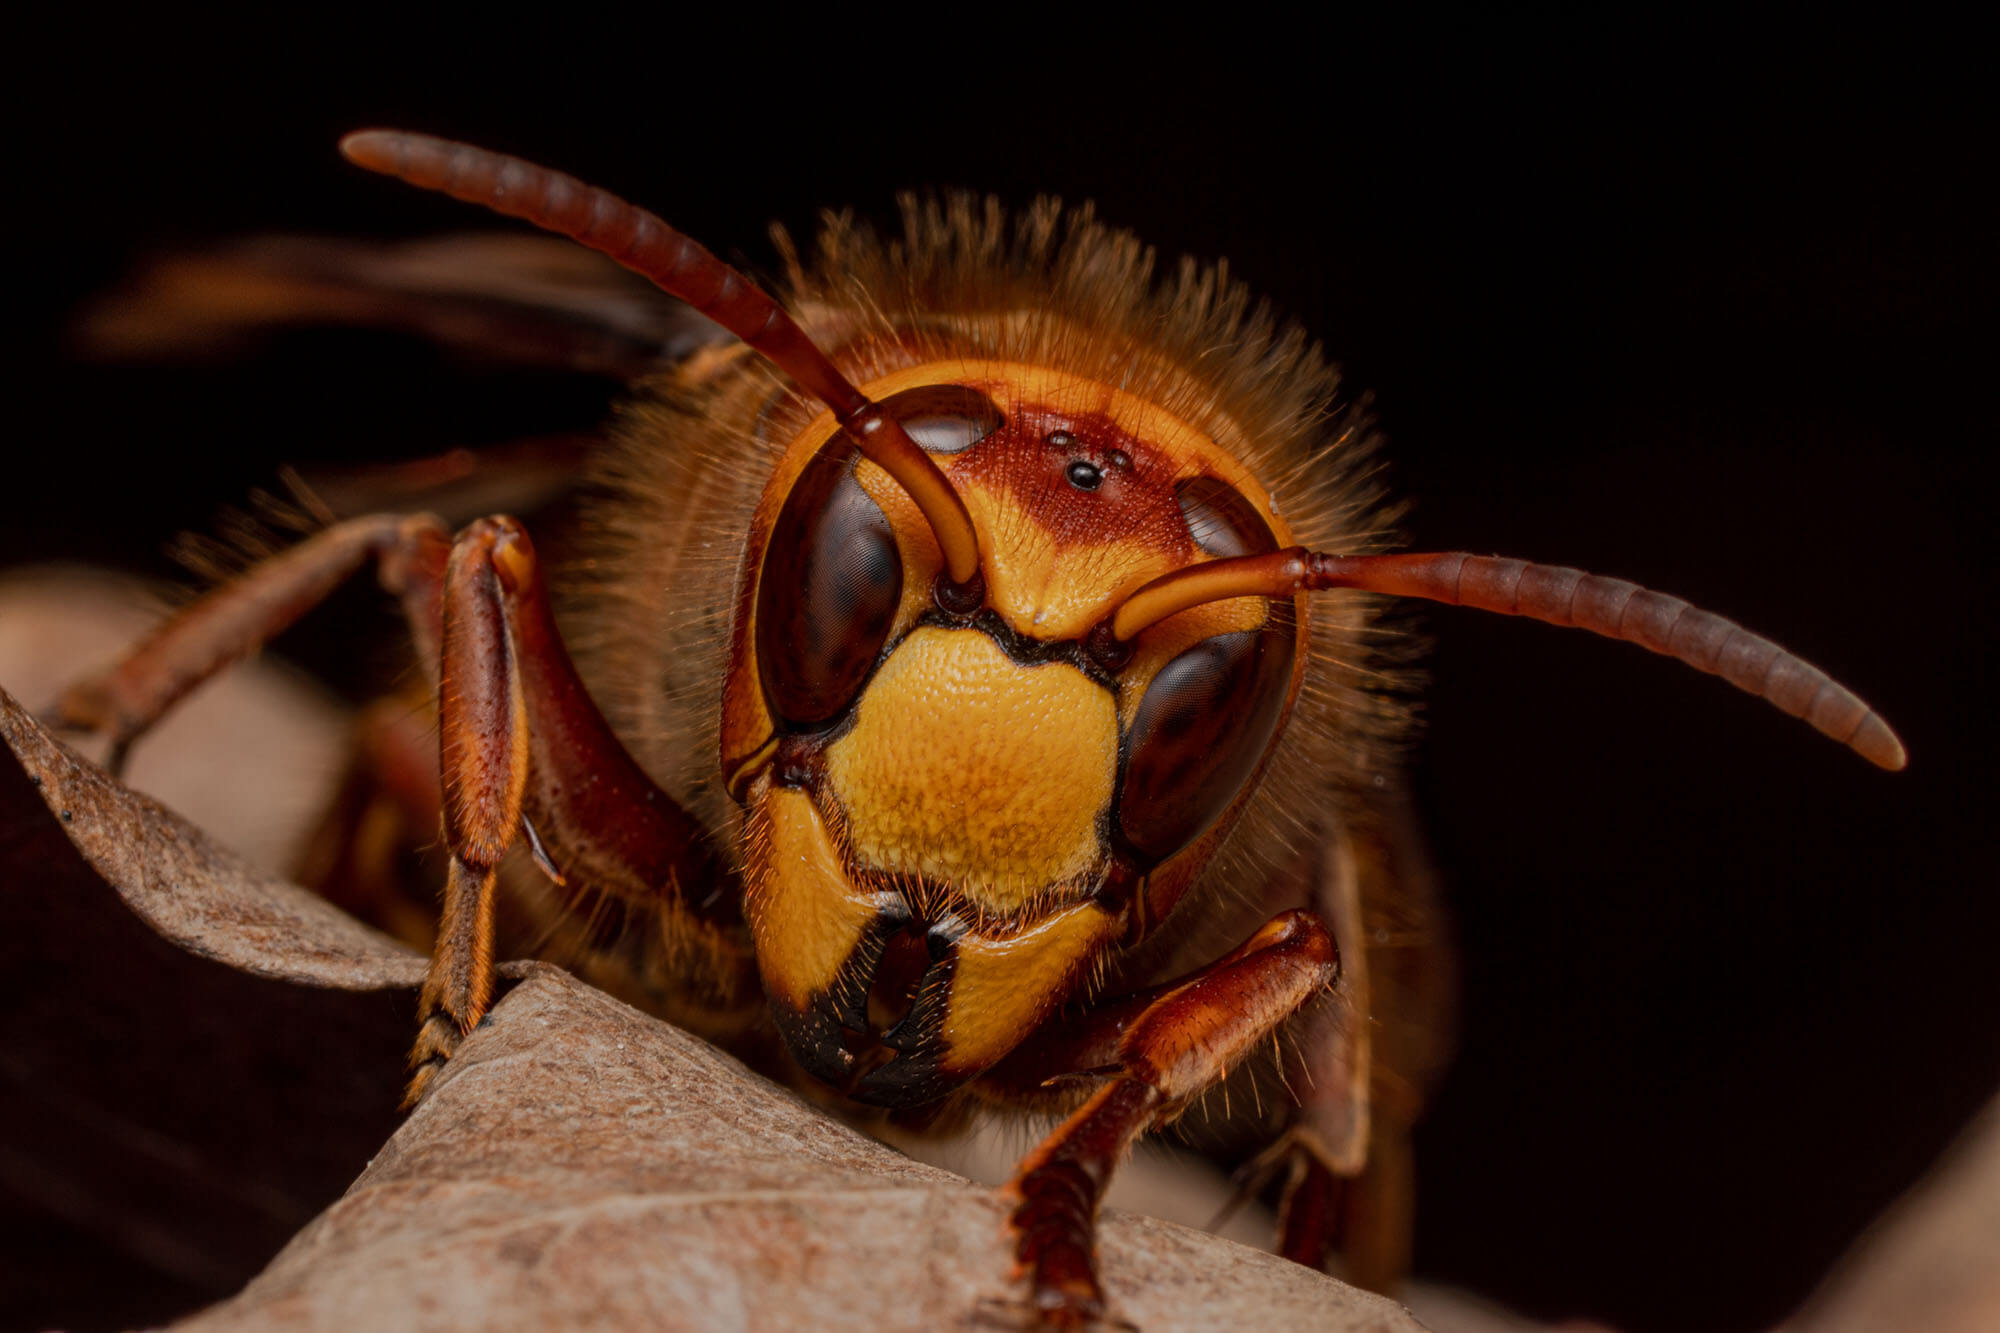 A close up of a wasp sitting on a brown leaf with a black background